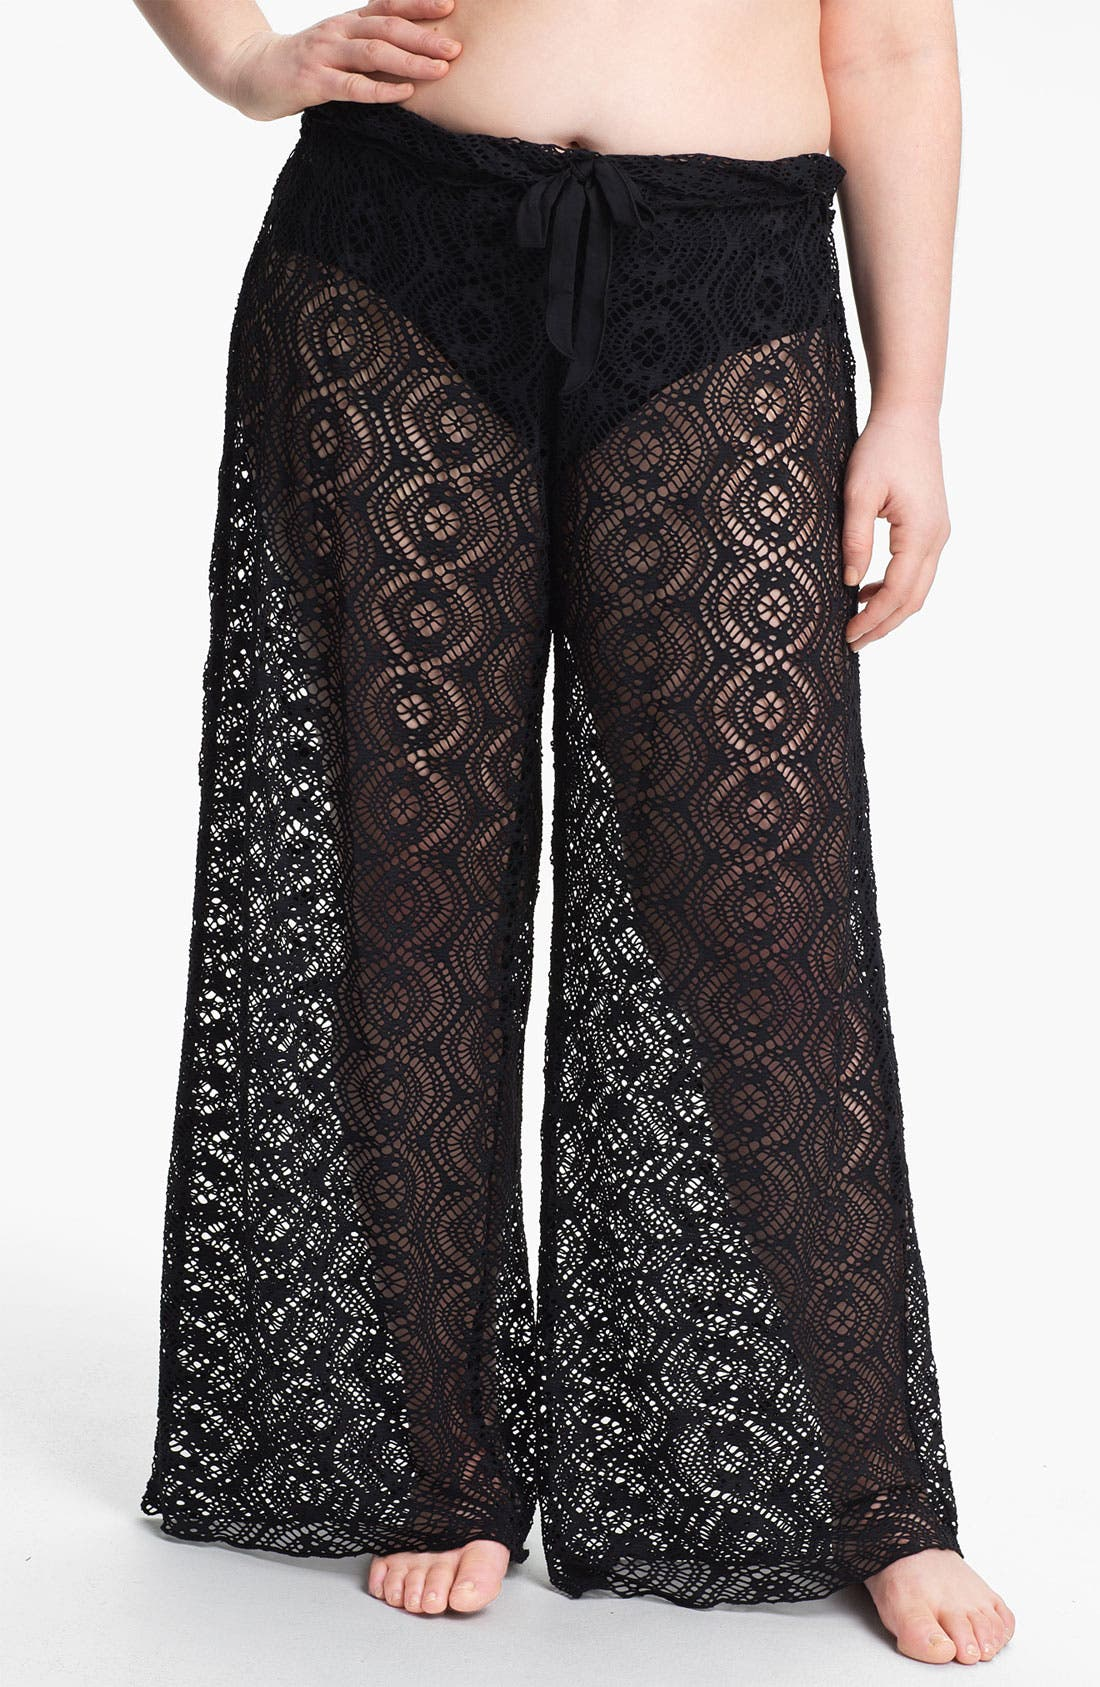 Alternate Image 1 Selected - Becca Etc. 'Marbella' Crochet Cover-Up Pants (Plus Size)